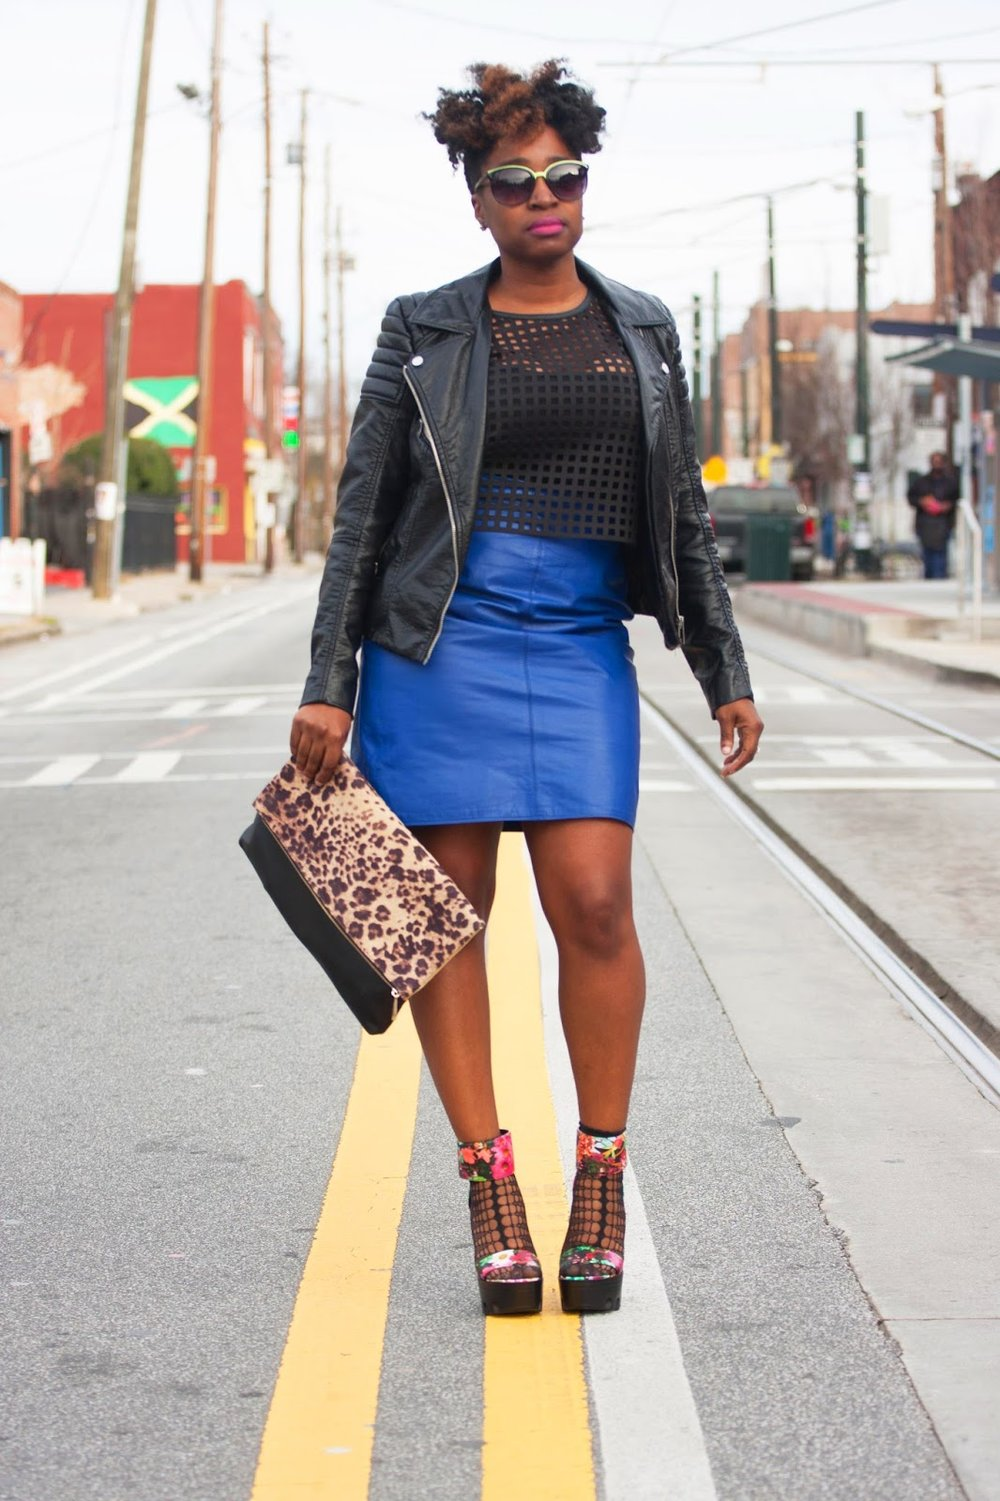 Atlanta style blogger, style blogger, atlanta blogger, black moto jacket, blue leather skirt, black girls killing it, street style, street fashion